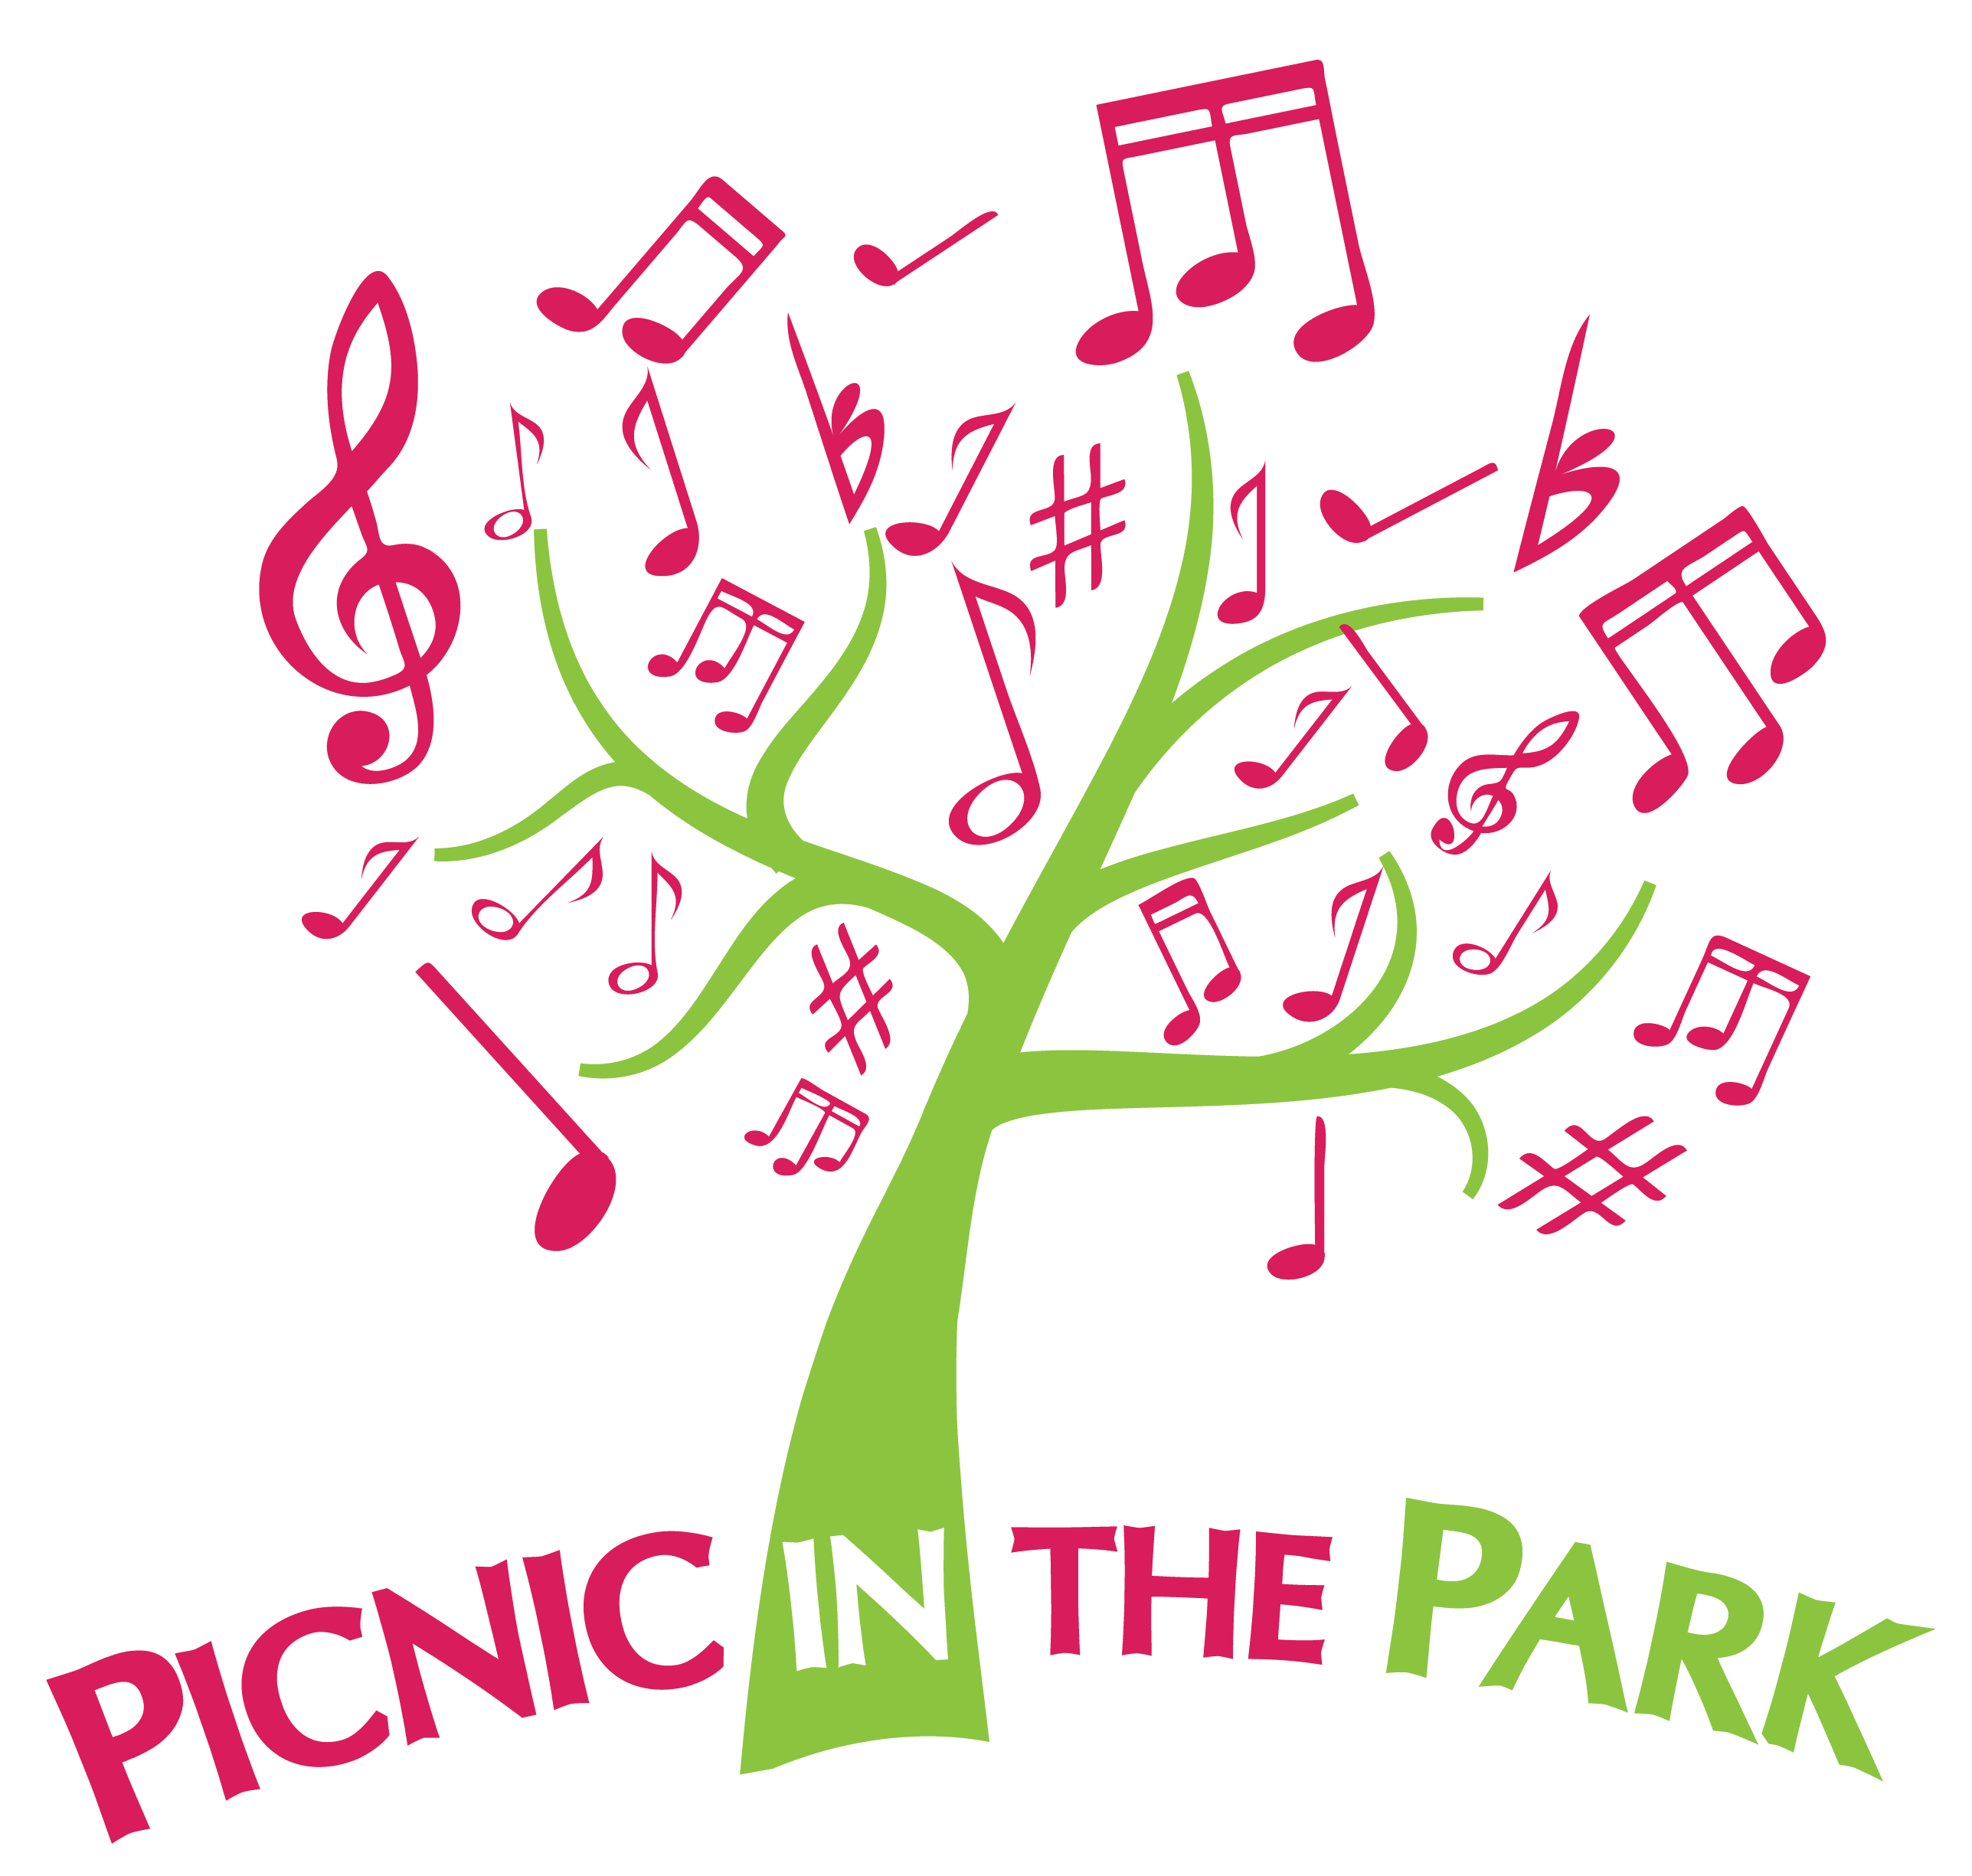 Picnic in the Park graphic-01